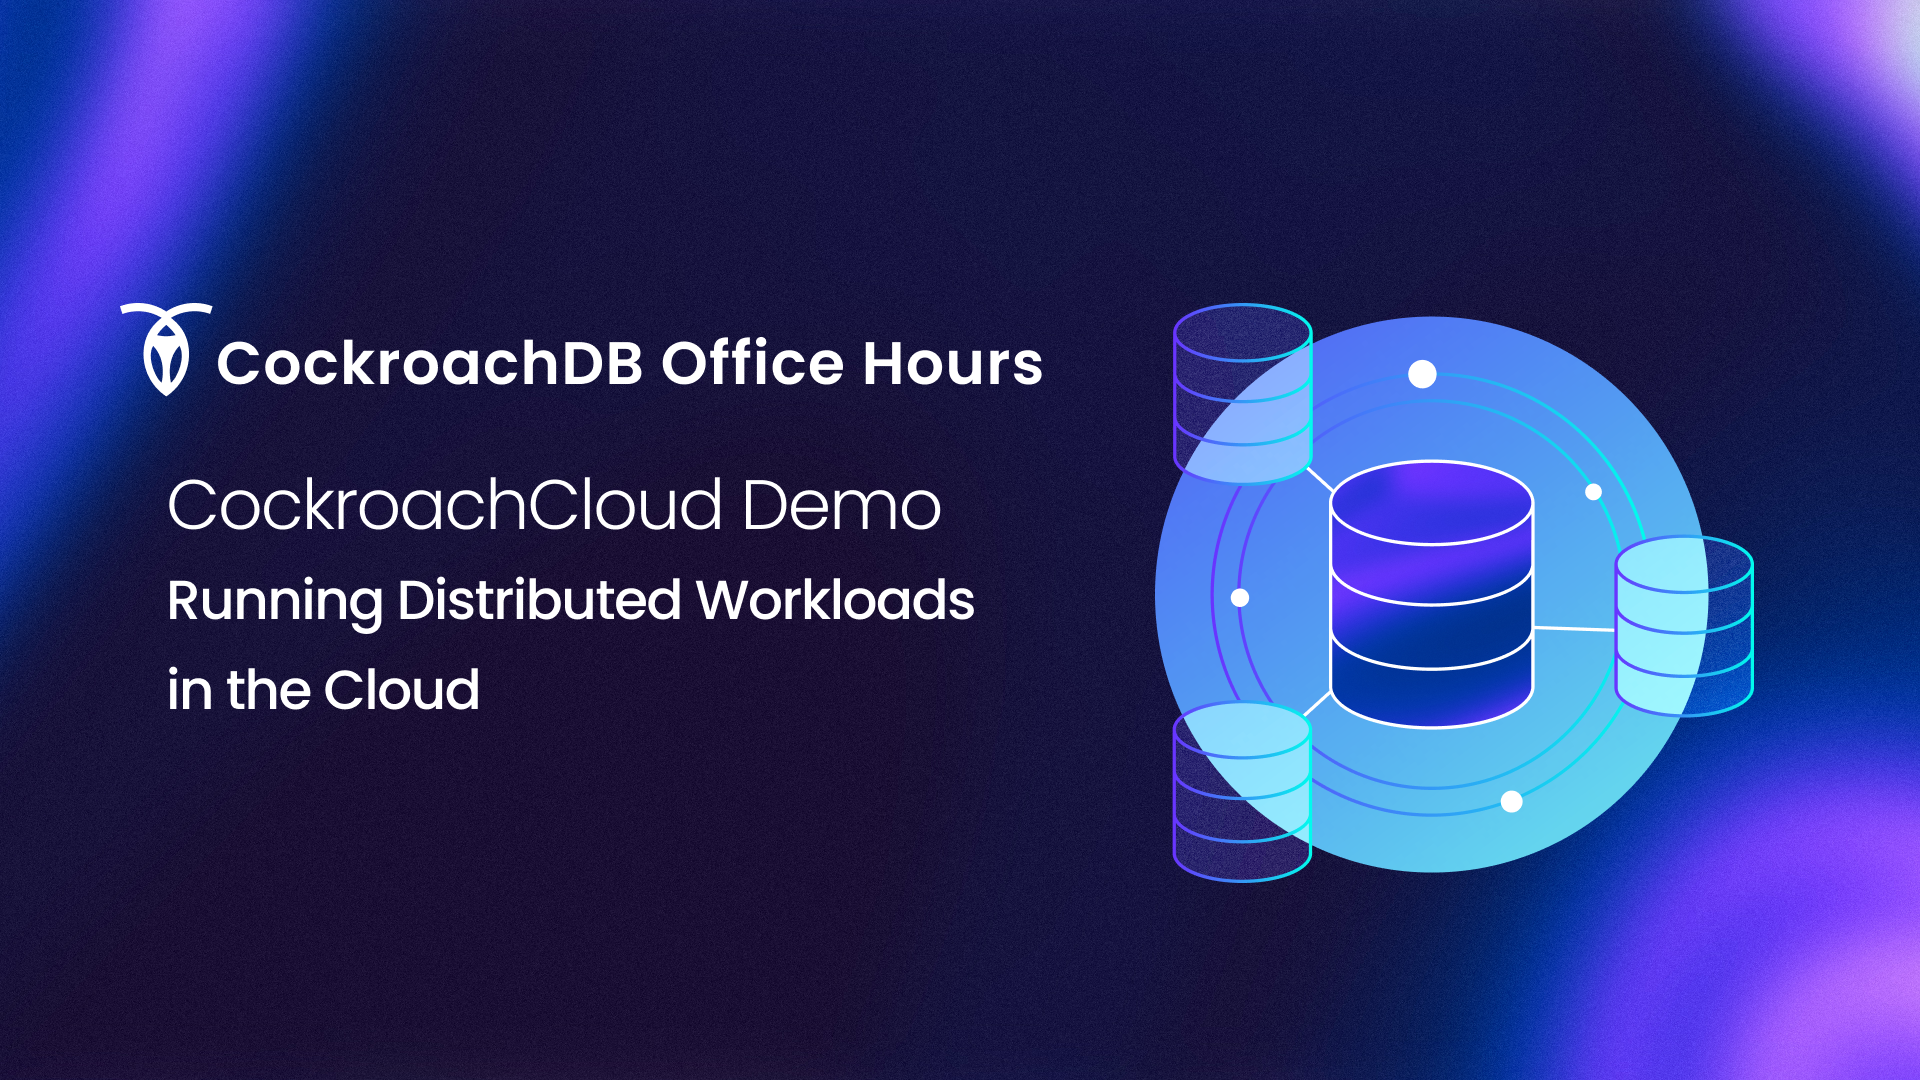 CockroachDB Office Hours: CockroachCloud Demo - Running Distributed Workloads in the Cloud